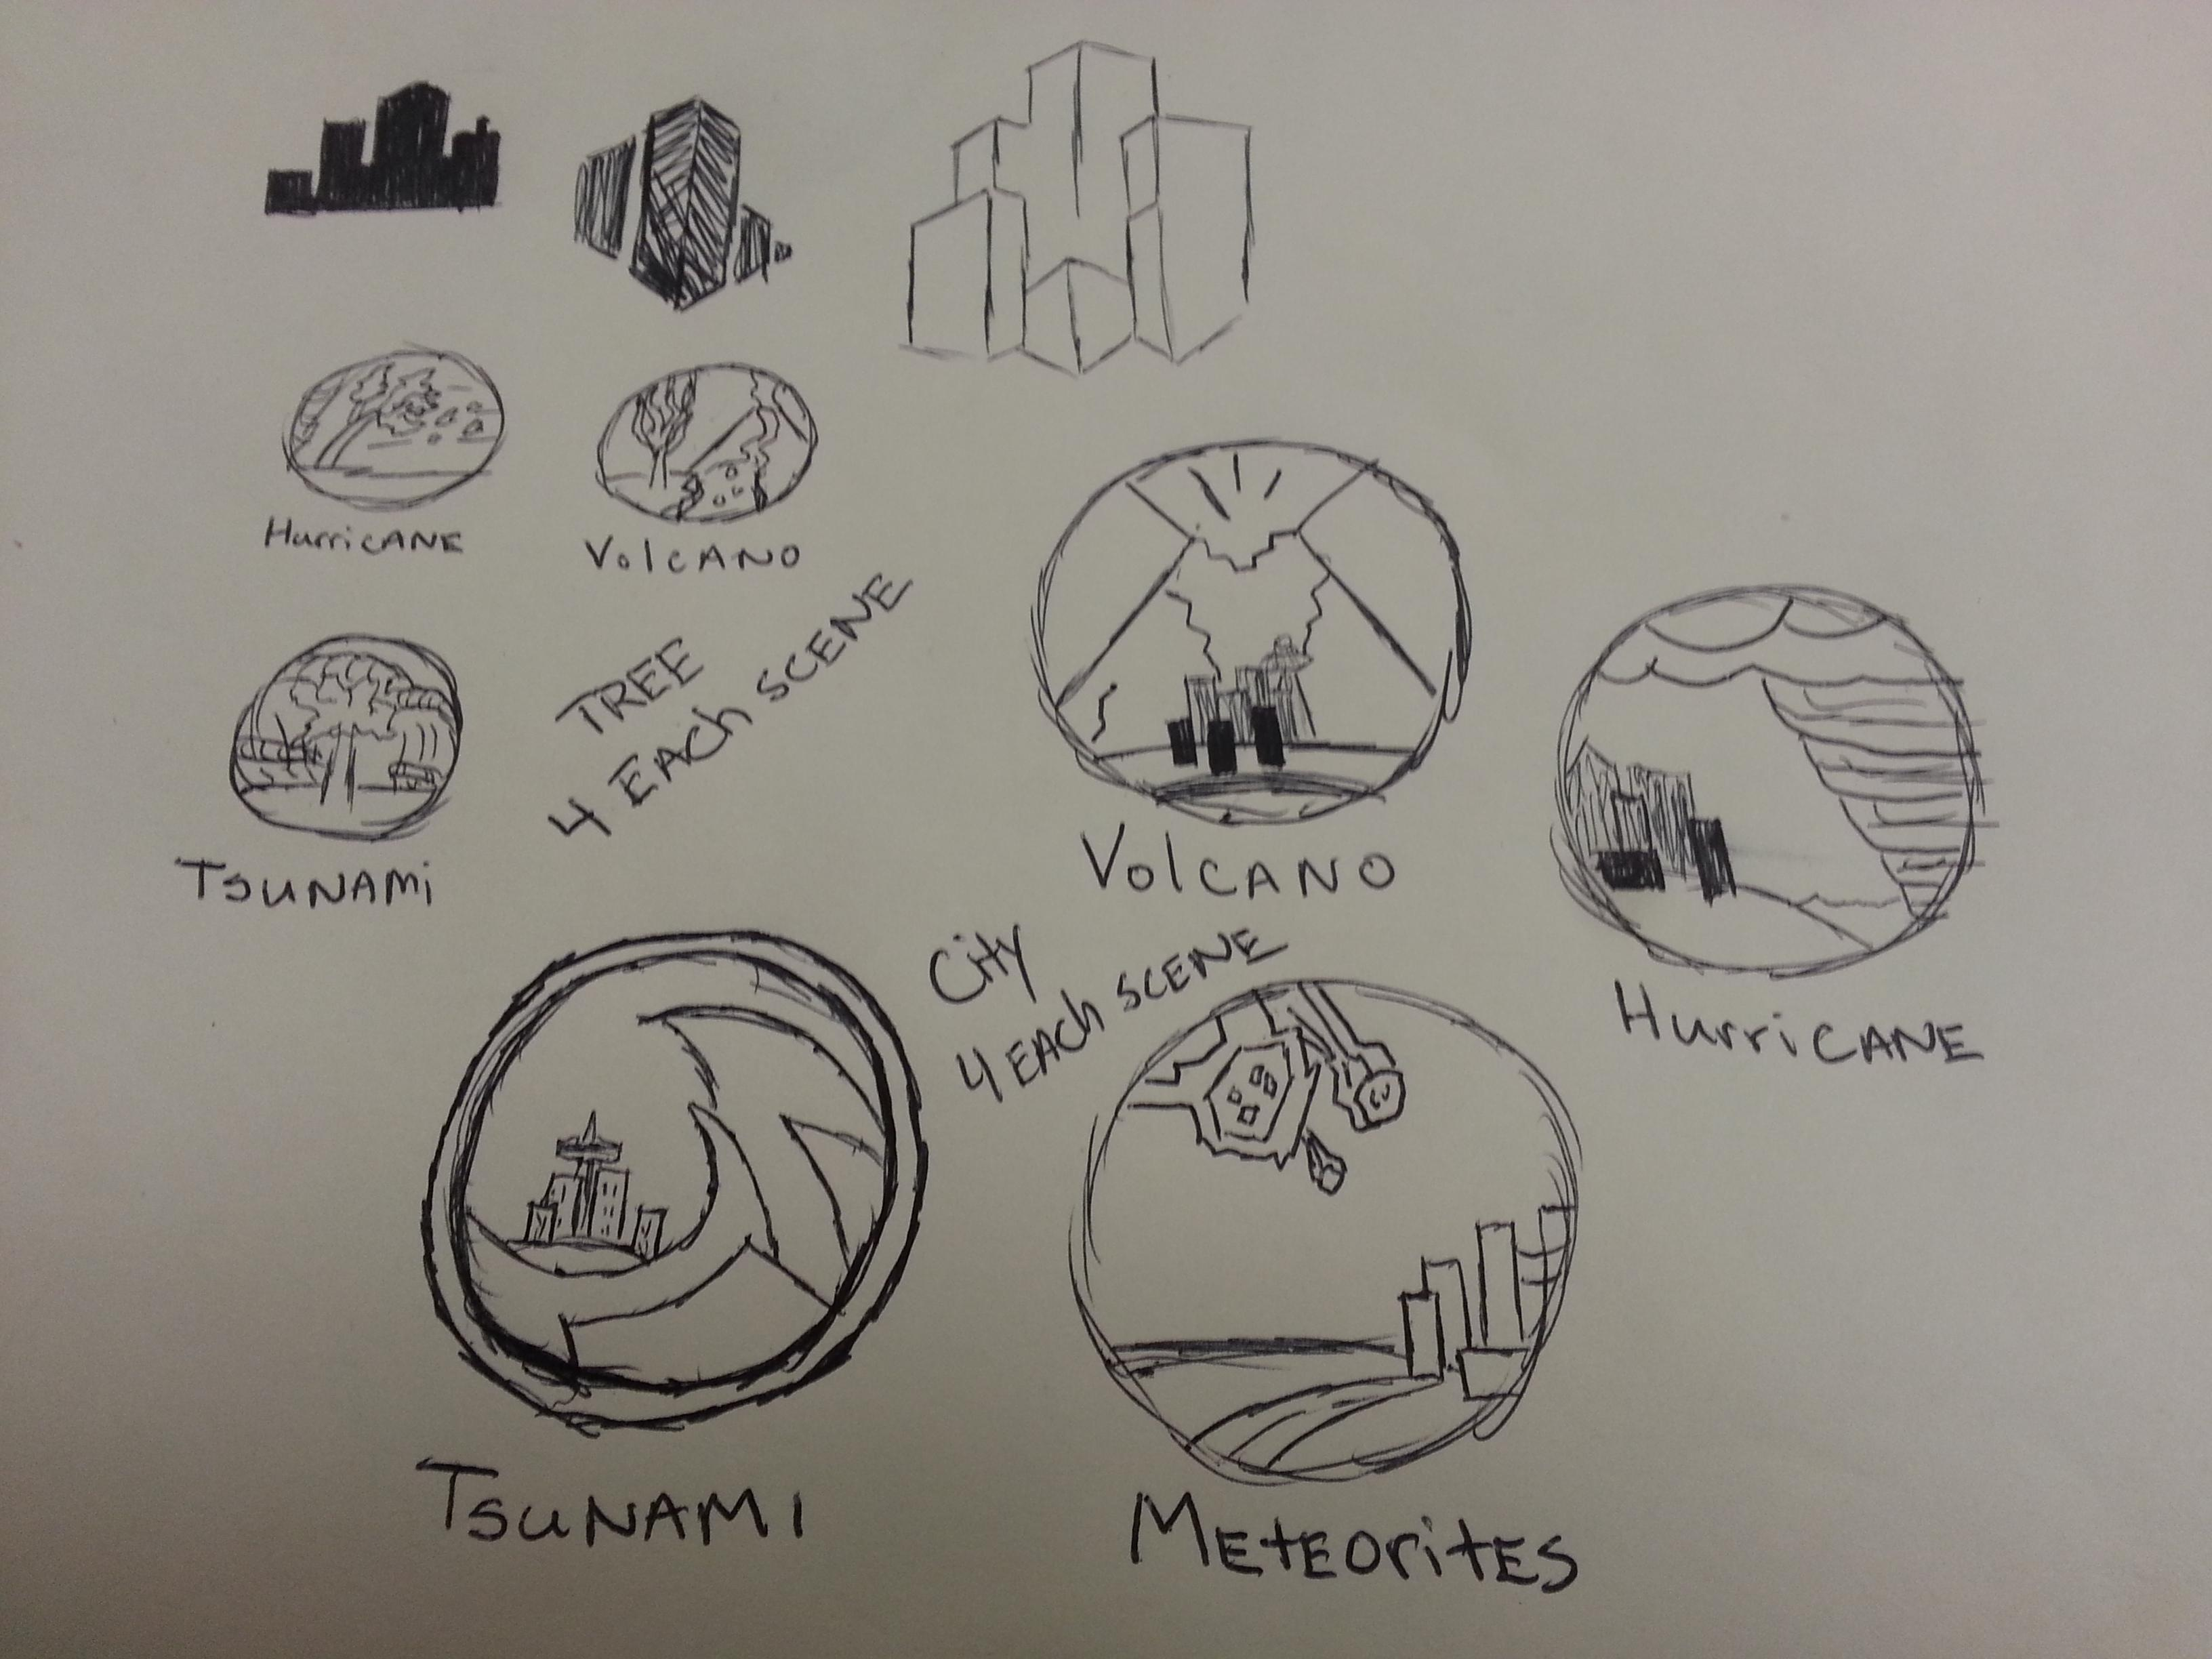 catastrophic event icons - image 4 - student project